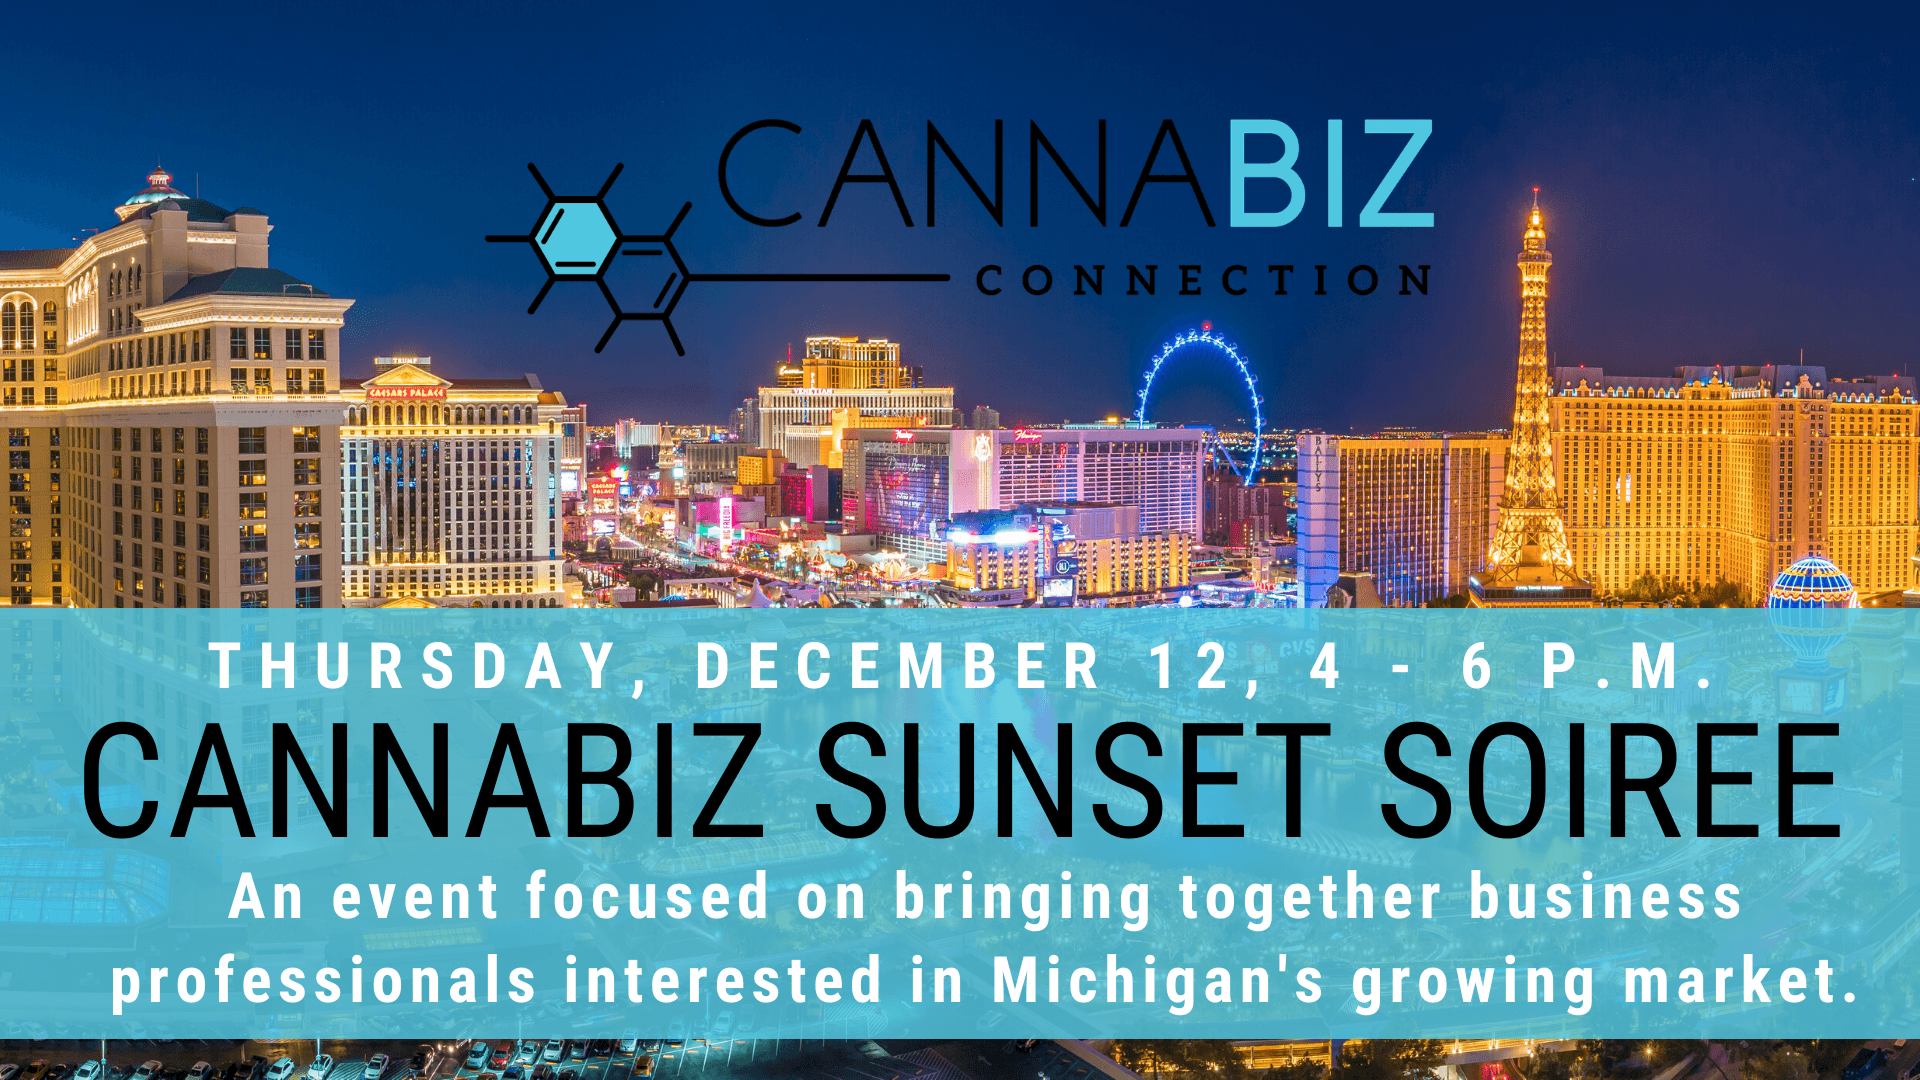 Cannabiz Connection Sunset Soiree at MJBizCon